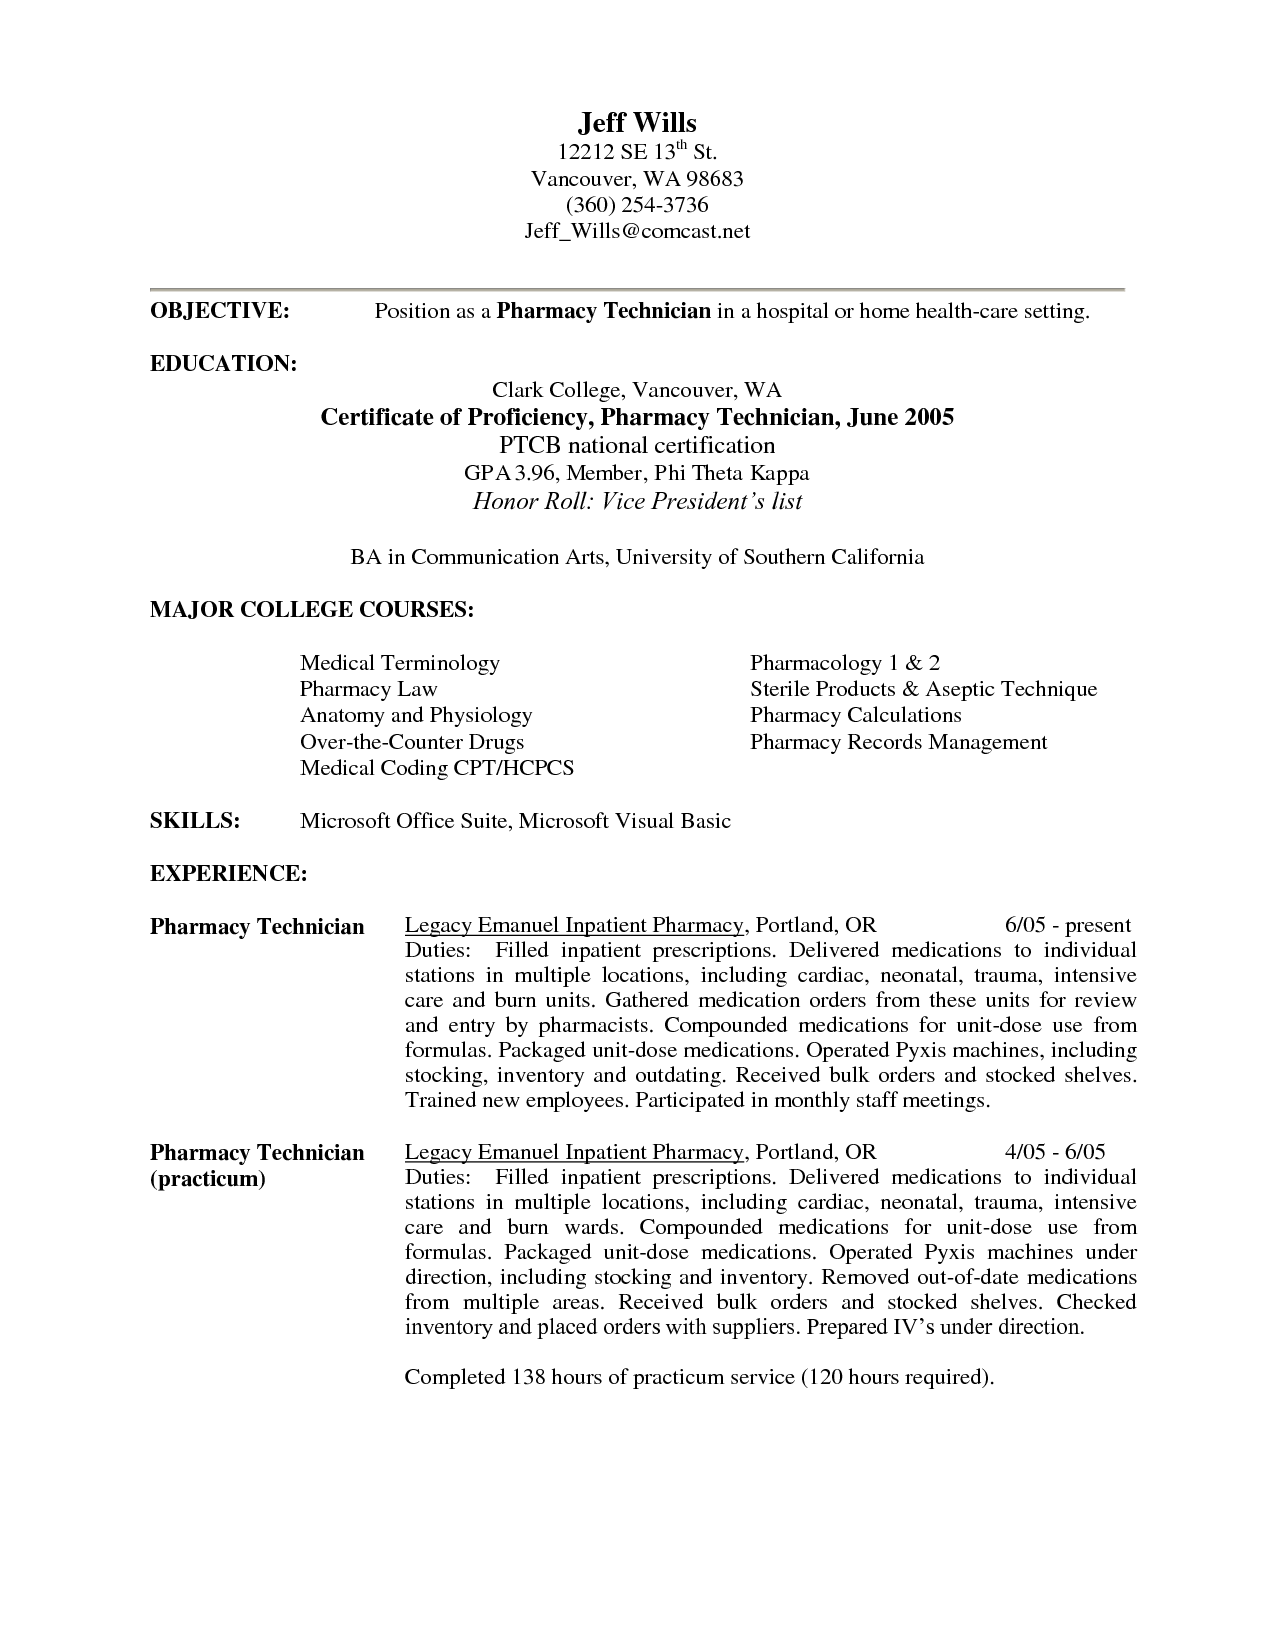 Pharmacy Technician Objective Resume Samples | CPhT | Pinterest ...